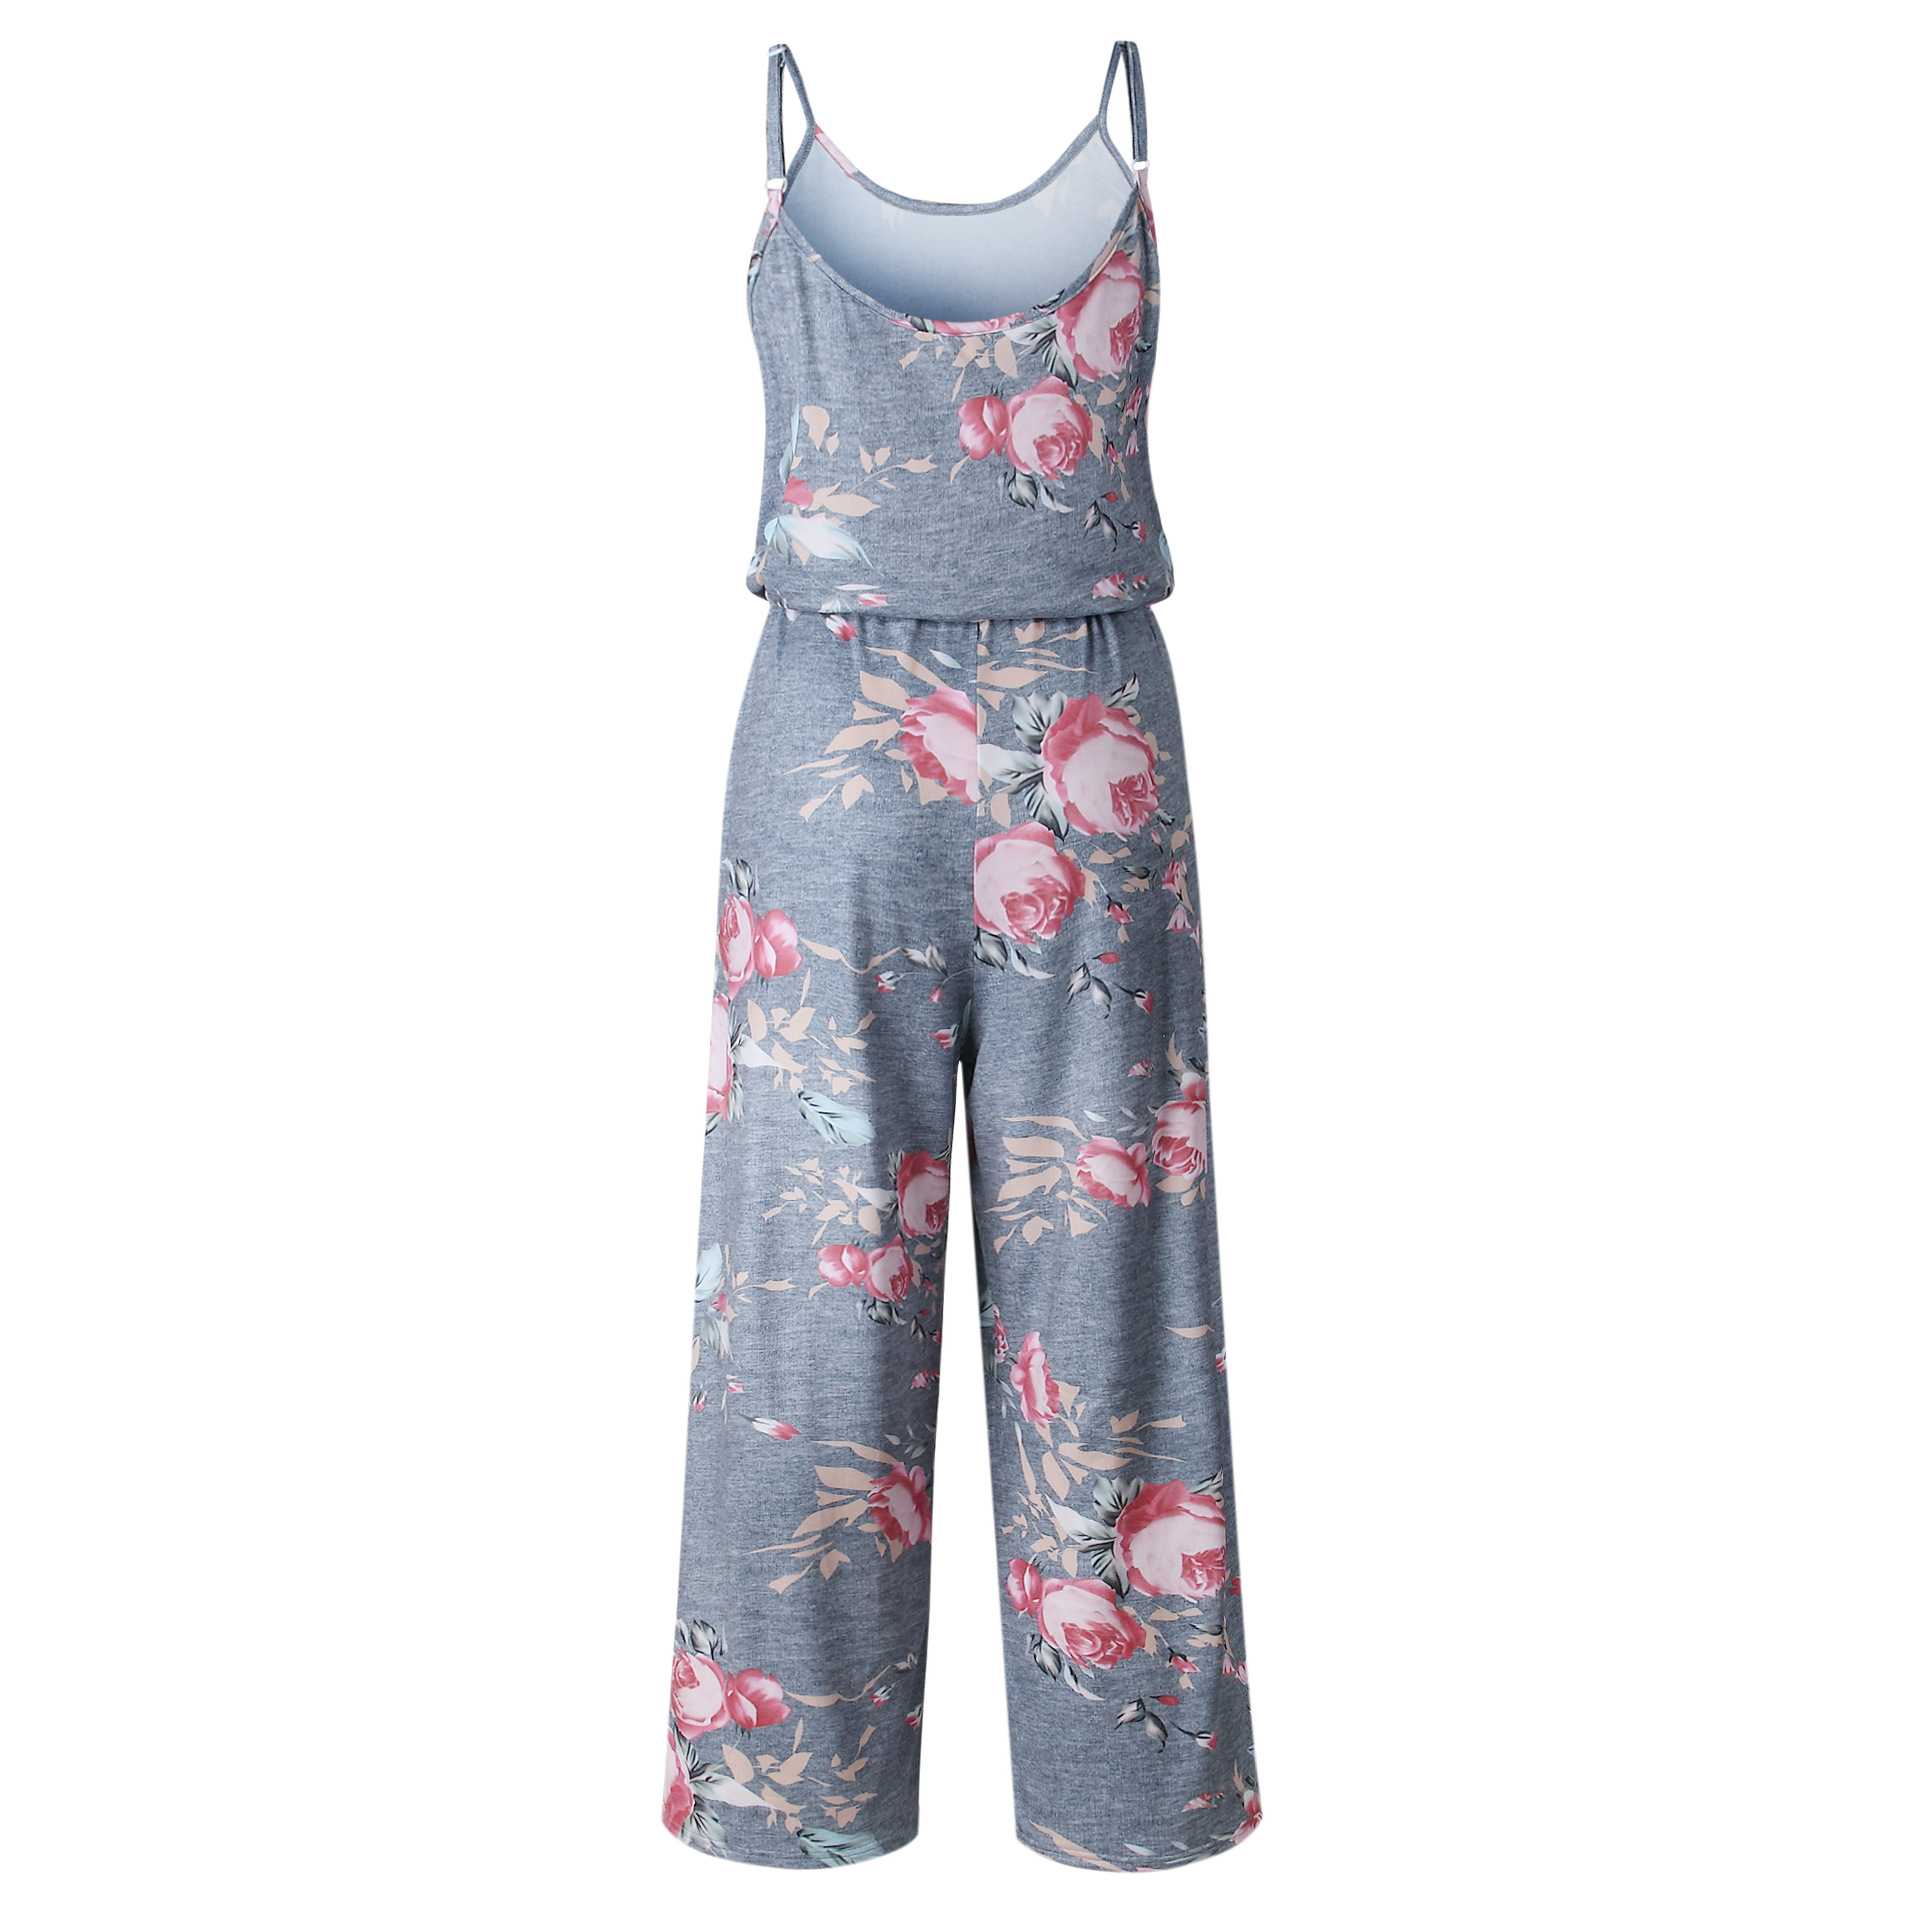 Spaghetti Strap Jumpsuit Women 2018 Summer Long Pants Floral Print Rompers Beach Casual Jumpsuits Sleeveless Sashes Playsuits 13